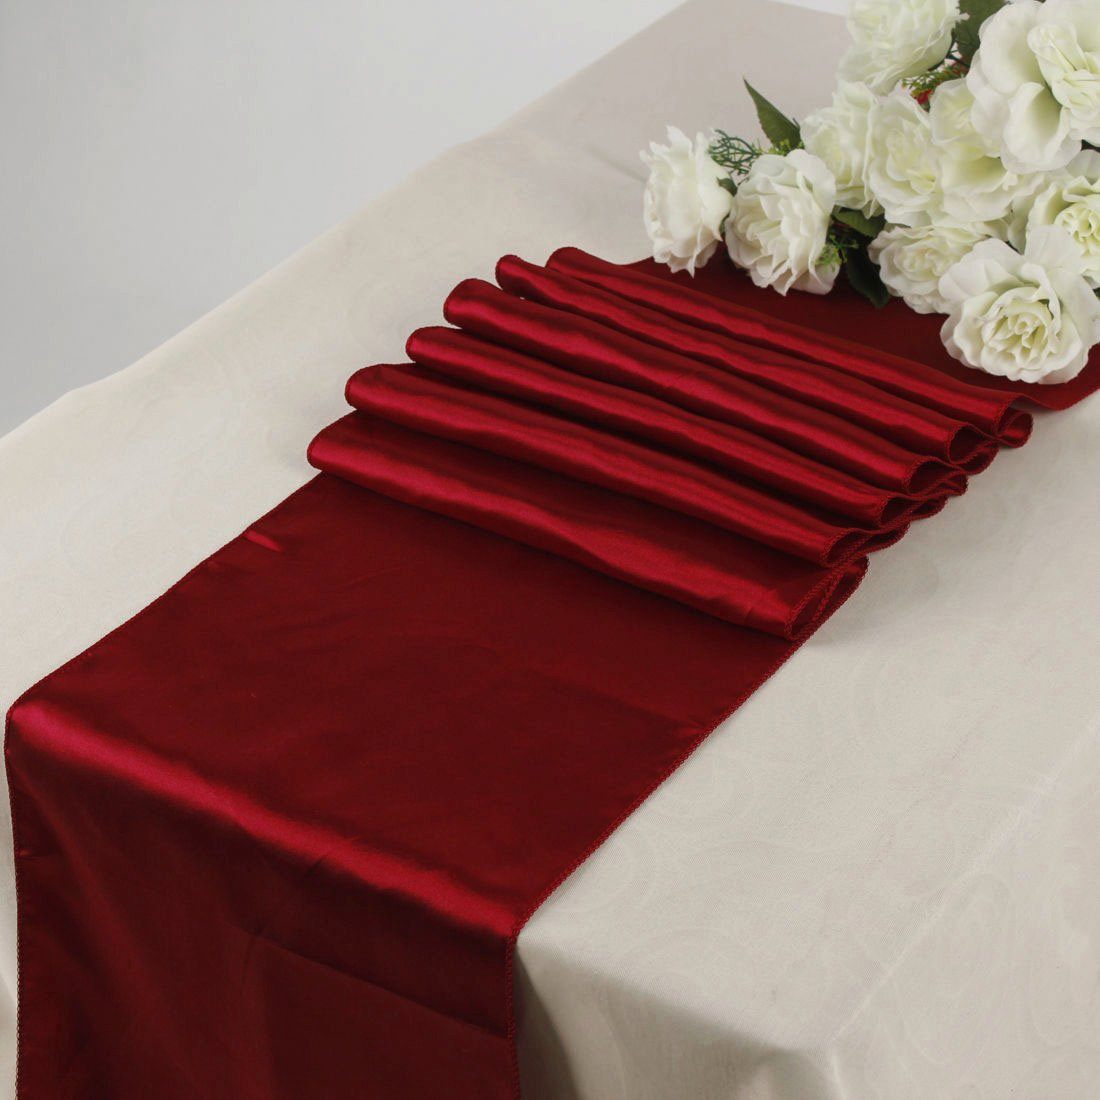 EnF Pack of 10 Satin Table Runner for Wedding Banquet Party Event Decoration SR26- Black Events n Fabrics